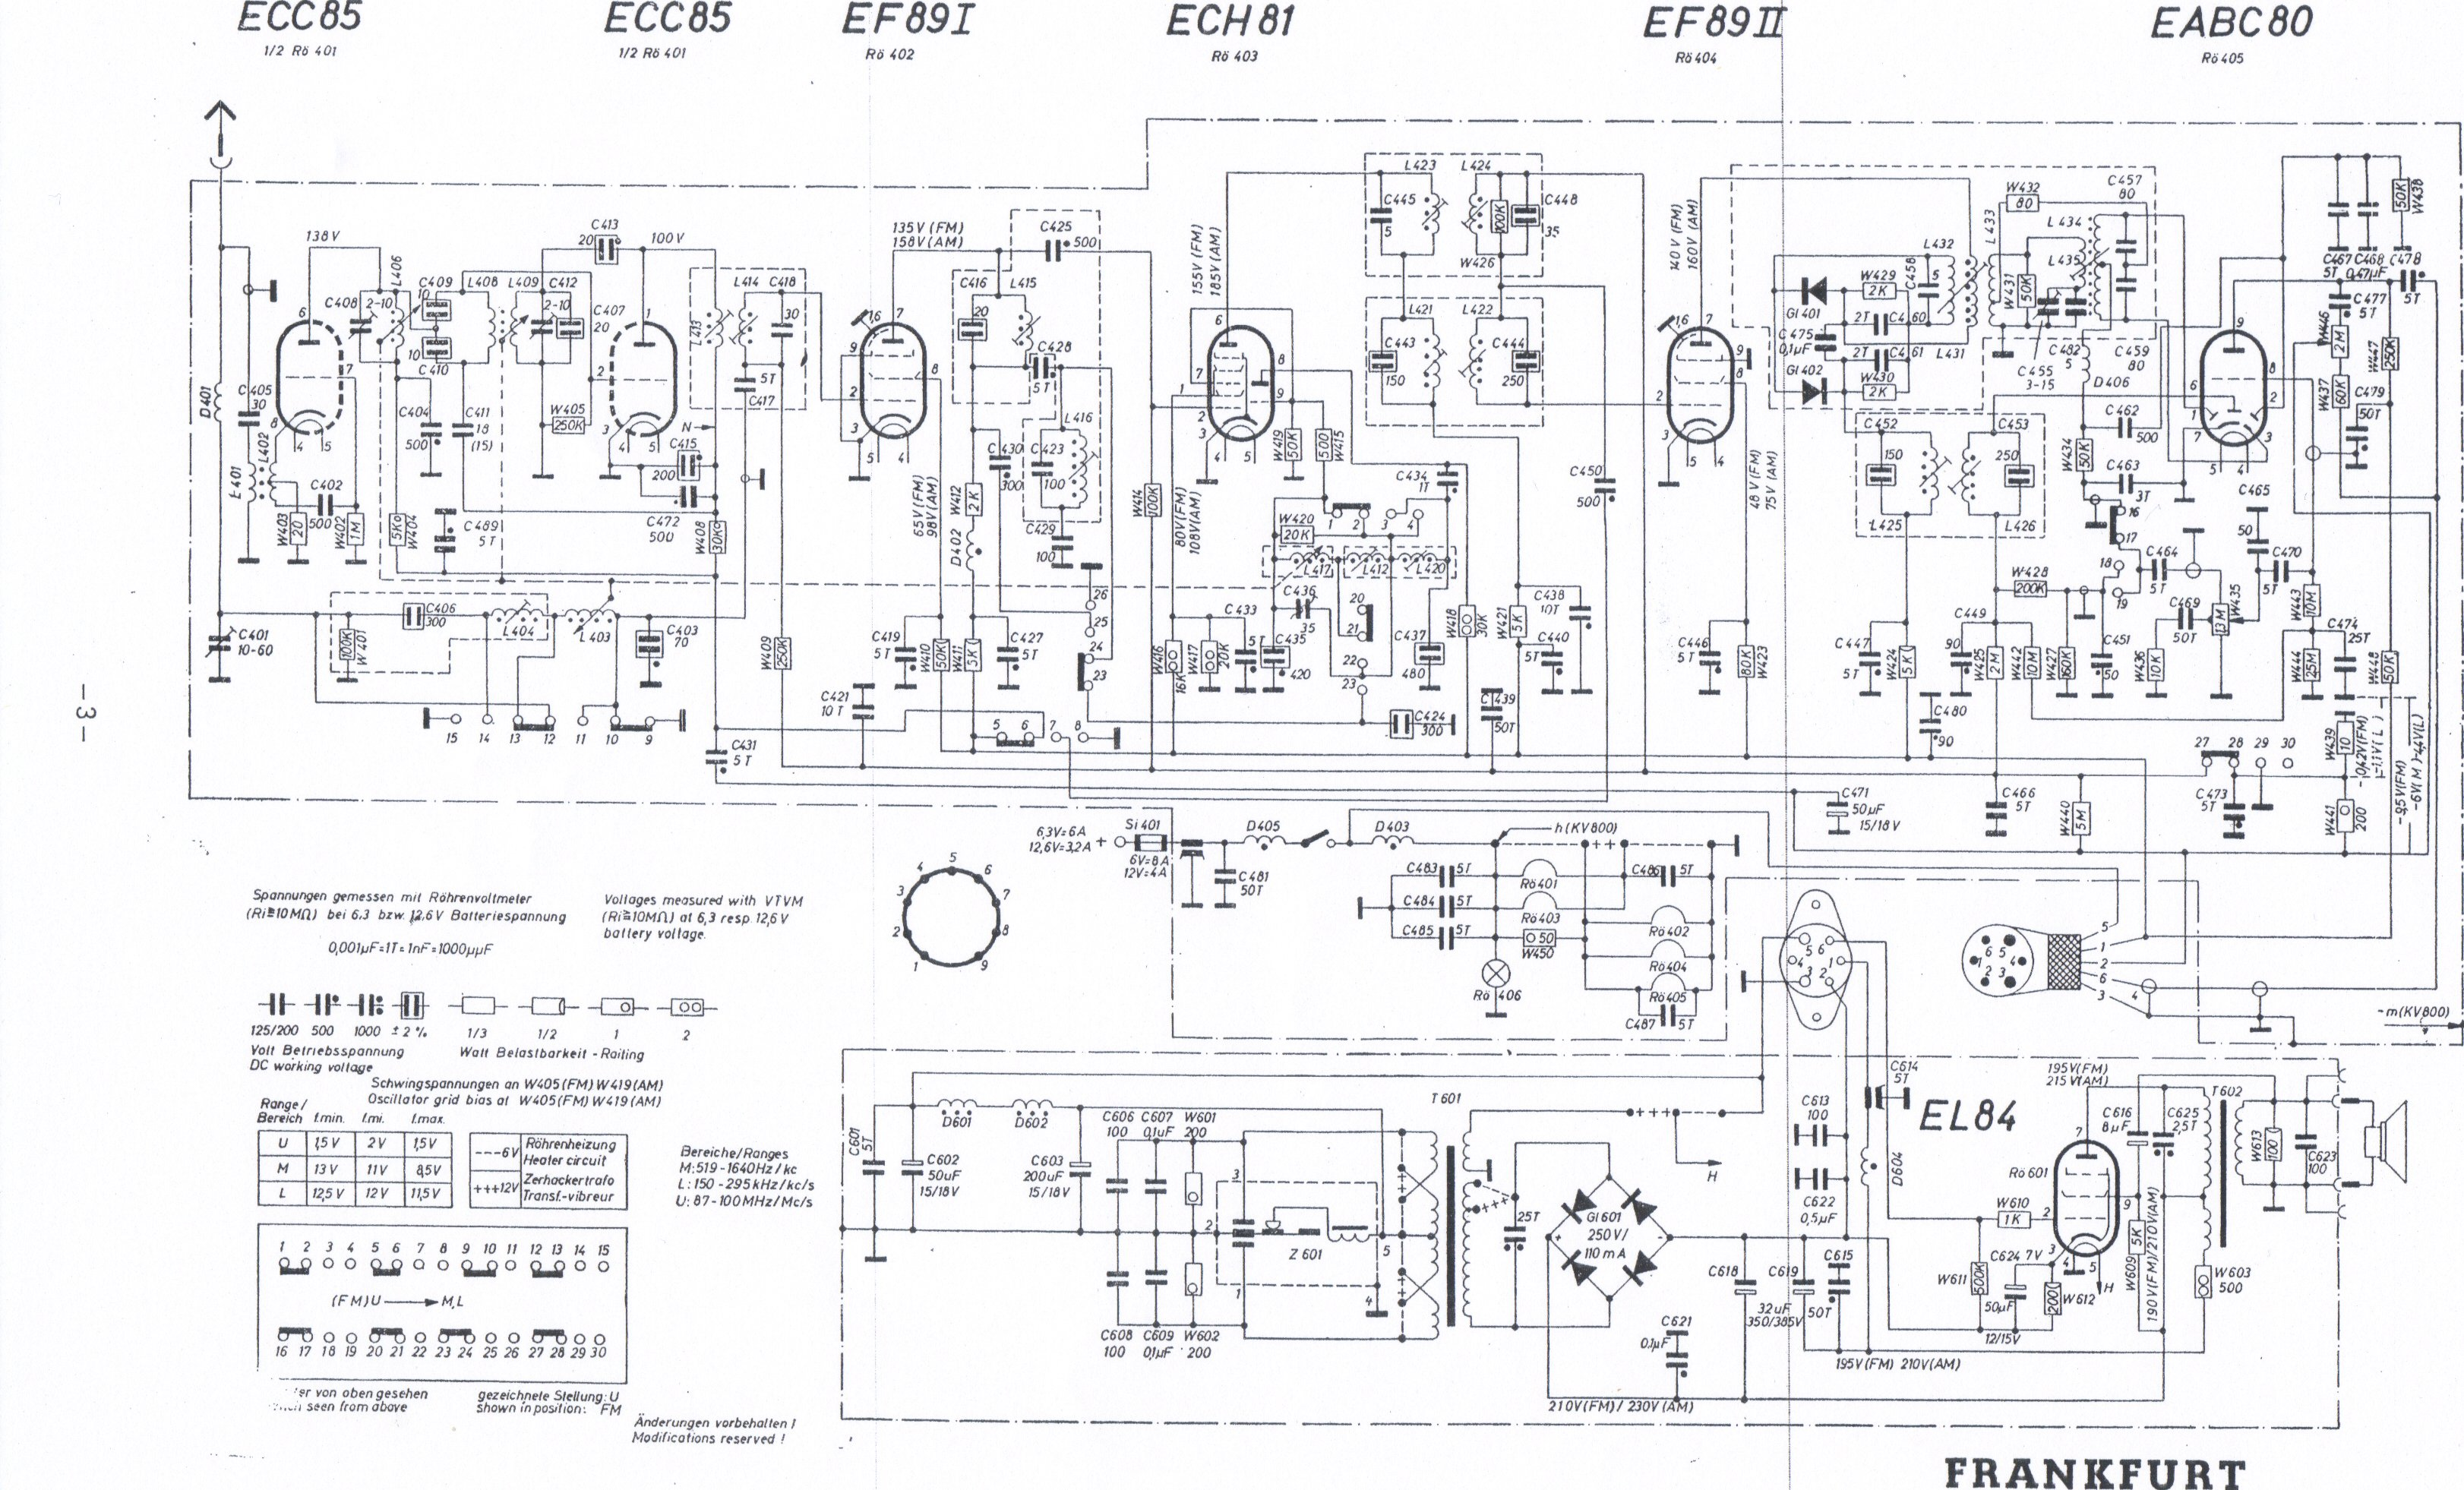 Addition Blaupunkt Wiring Diagram On Audi A4 B7 Stereo Wiring Diagram